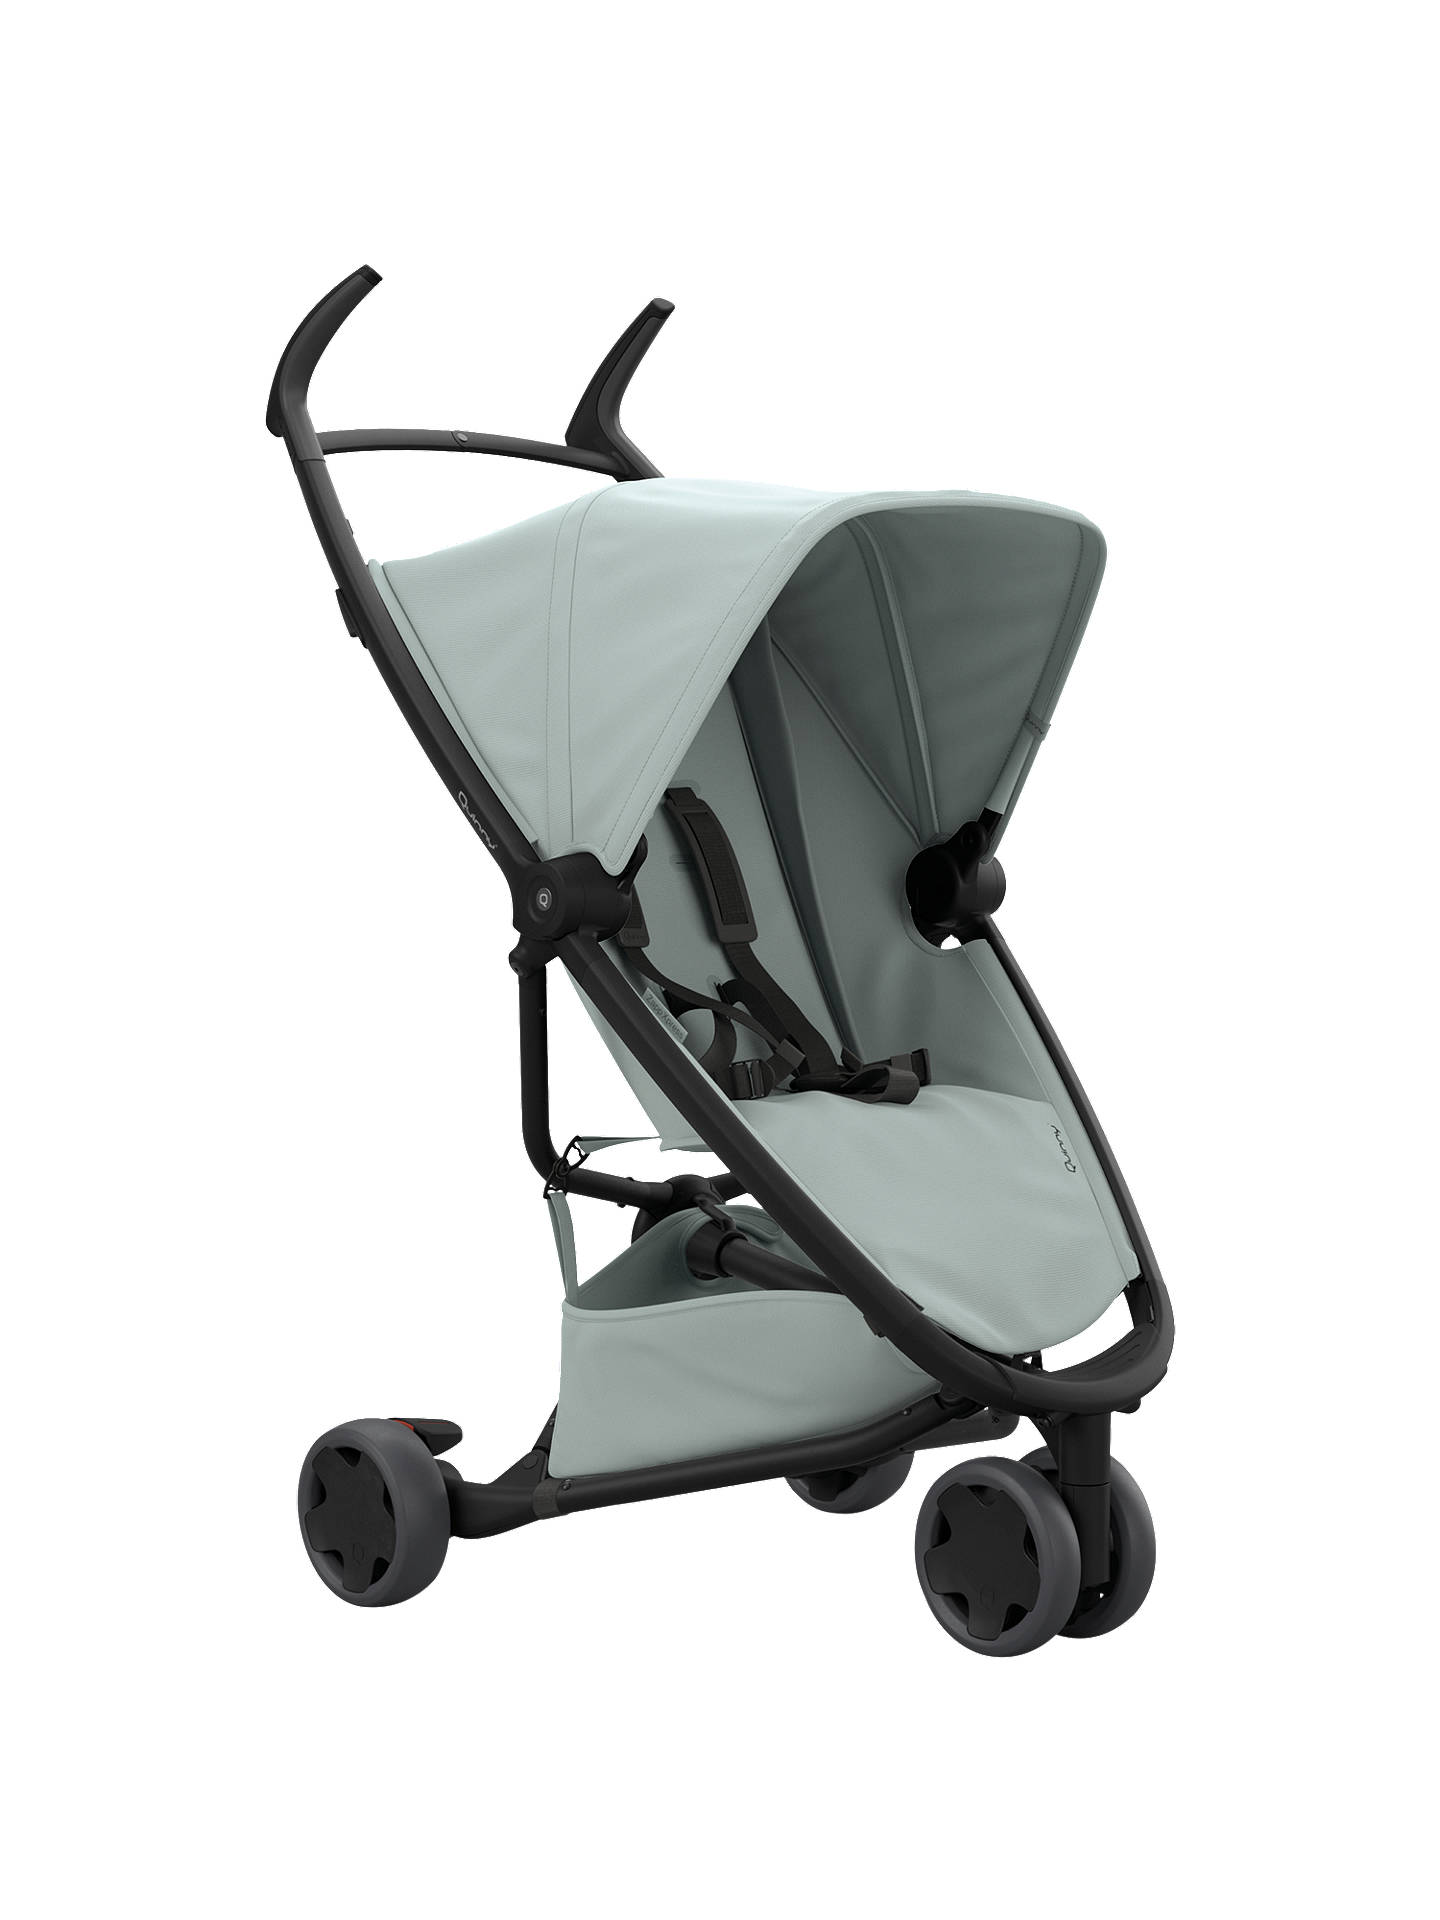 quinny zapp xpress pushchair grey at john lewis partners. Black Bedroom Furniture Sets. Home Design Ideas